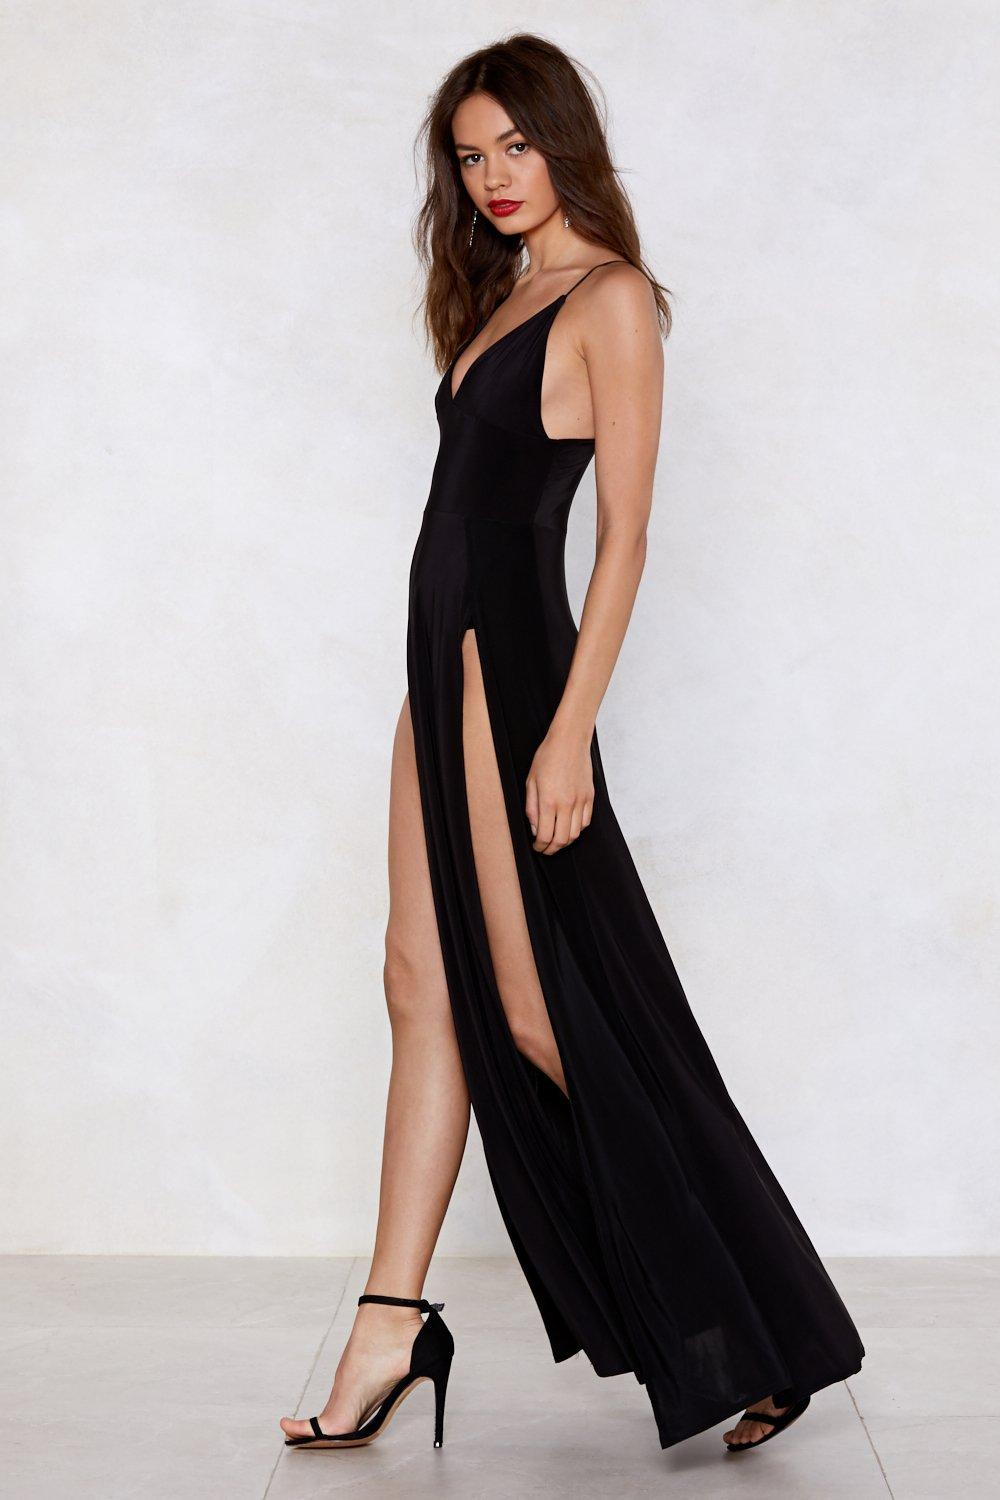 f3848f757d8 Womens Black Slit By Slit Maxi Dress. Hover to zoom